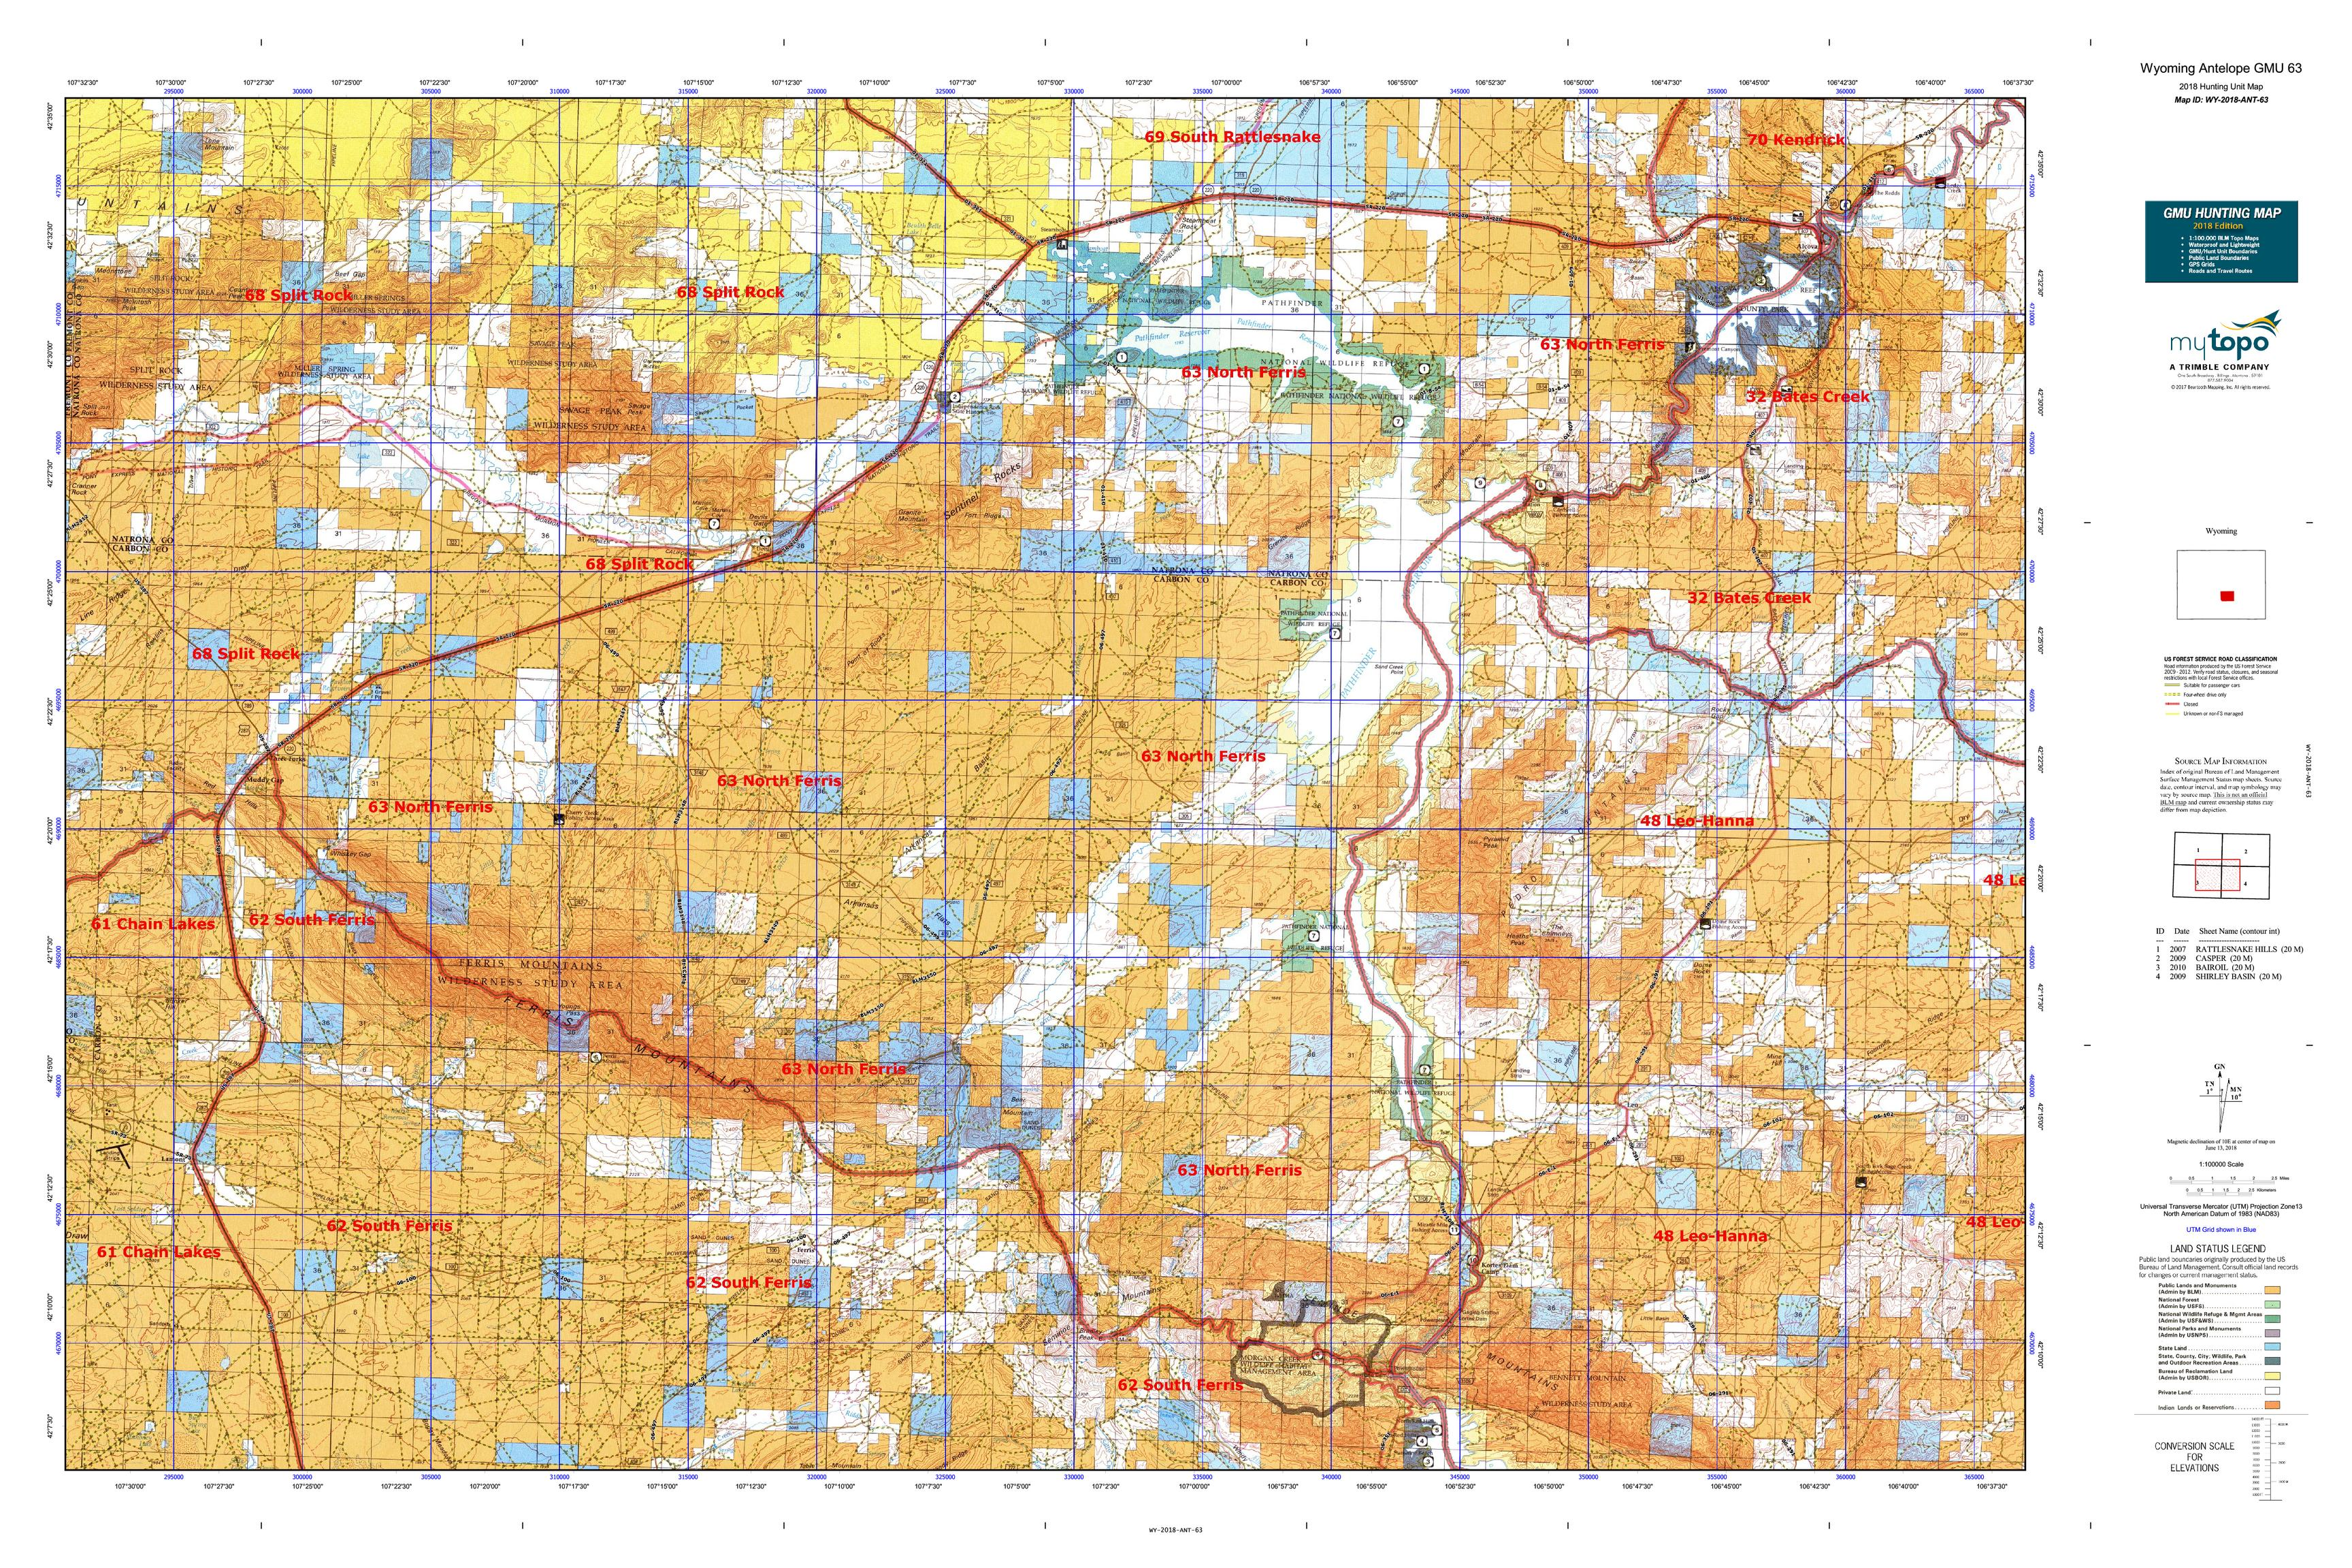 Wyoming Antelope Unit Map Wyoming Antelope GMU 63 Map | MyTopo